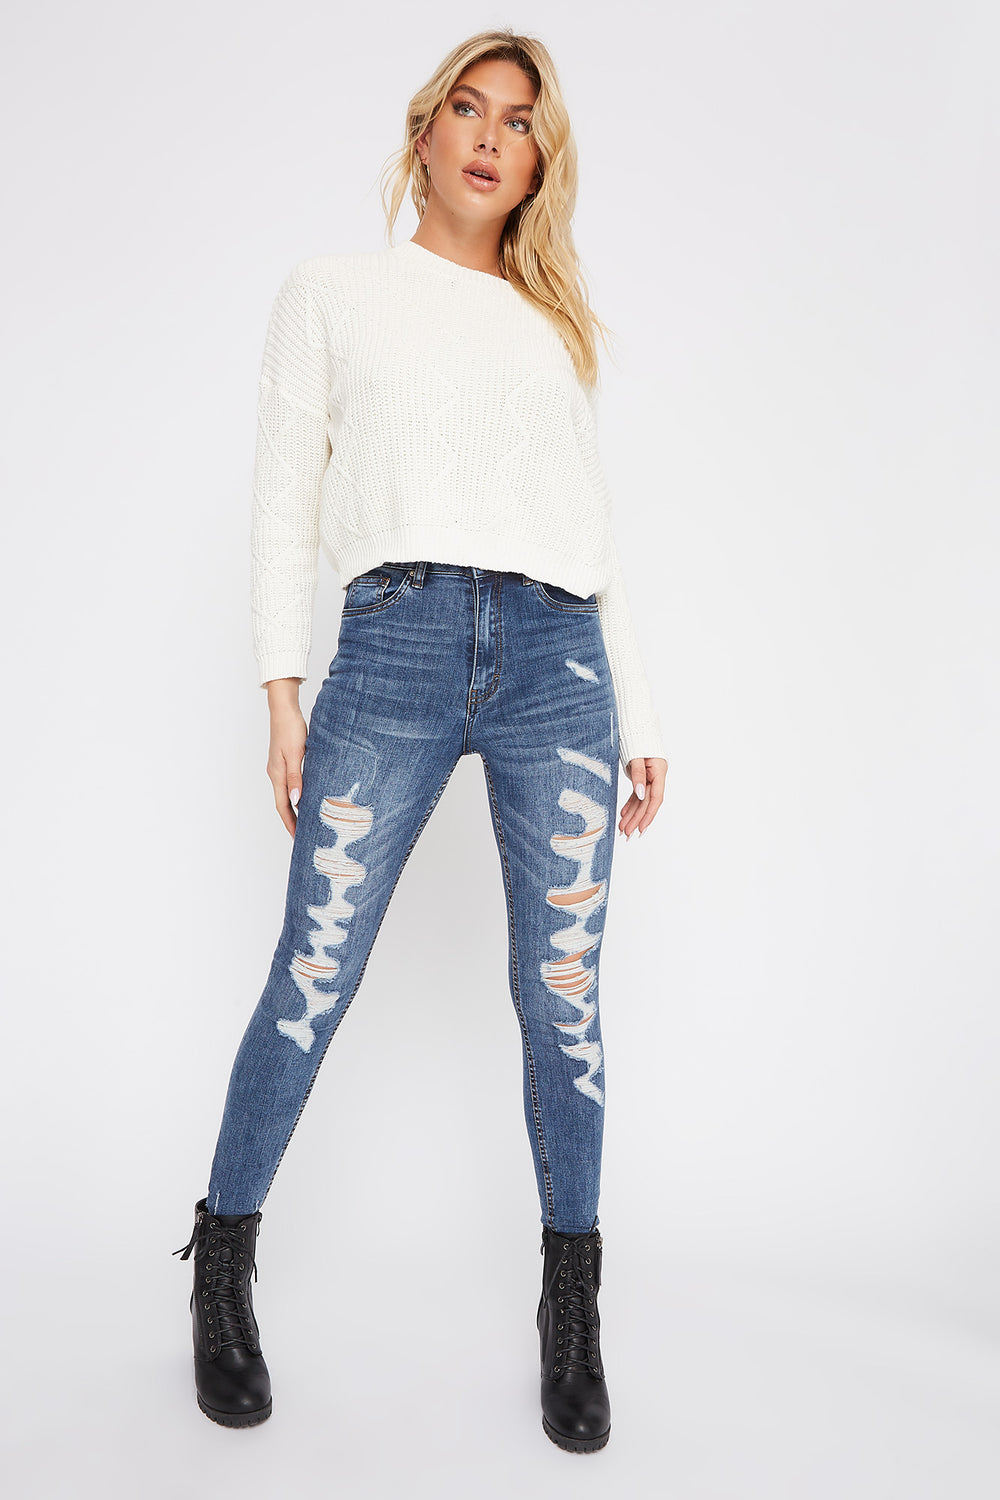 Ultra High-Rise Dark Wash Distressed Skinny Jean Medium Blue